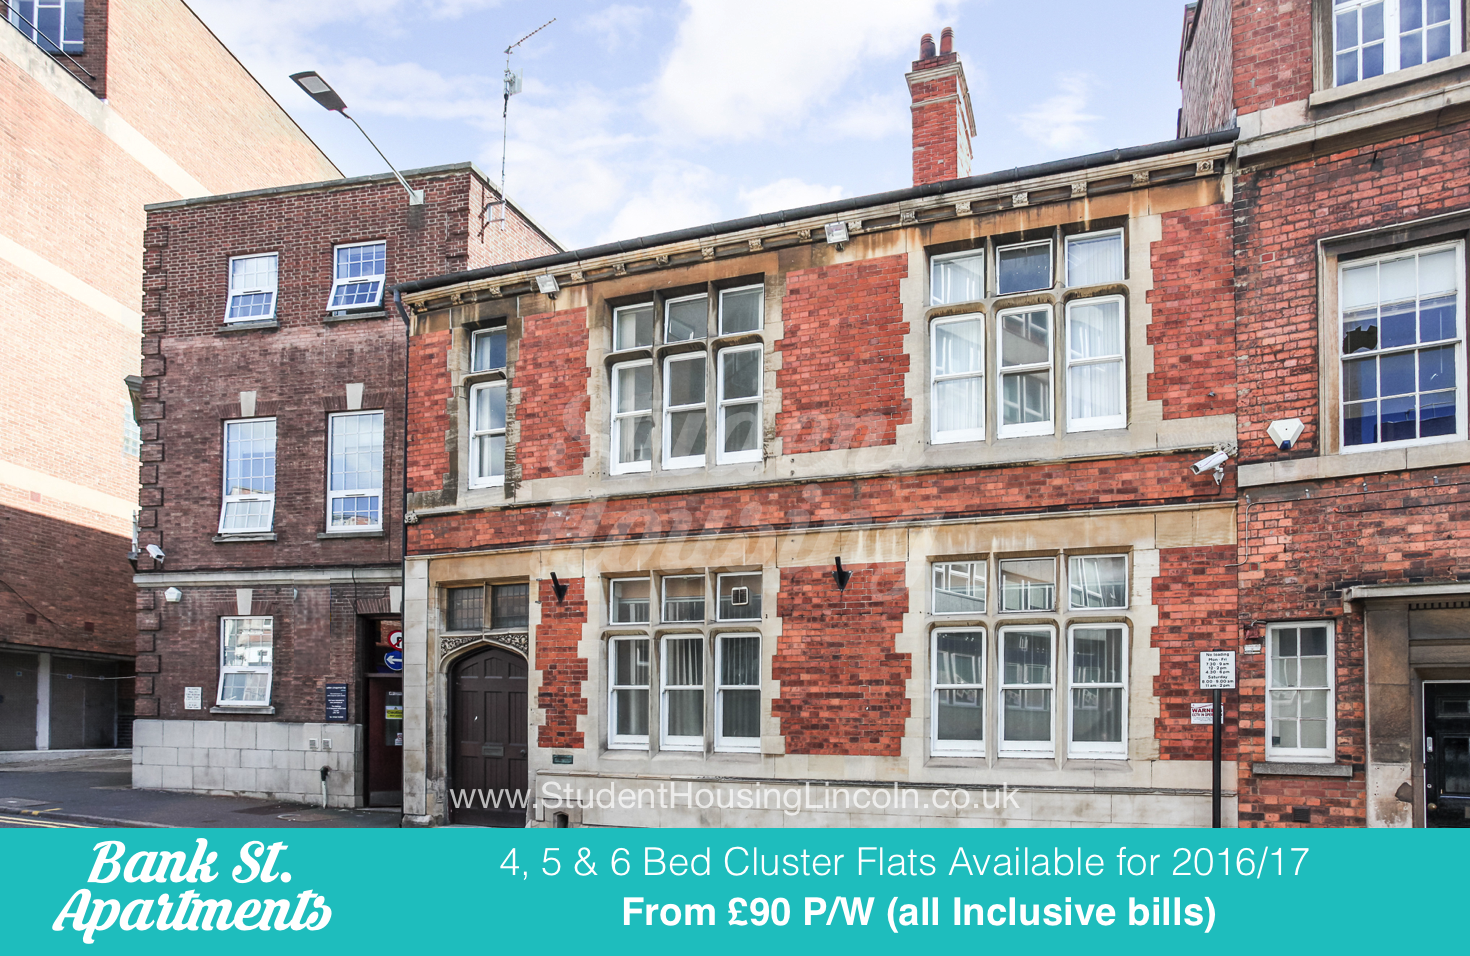 A5 Bank St. Apartments – 6 Bed